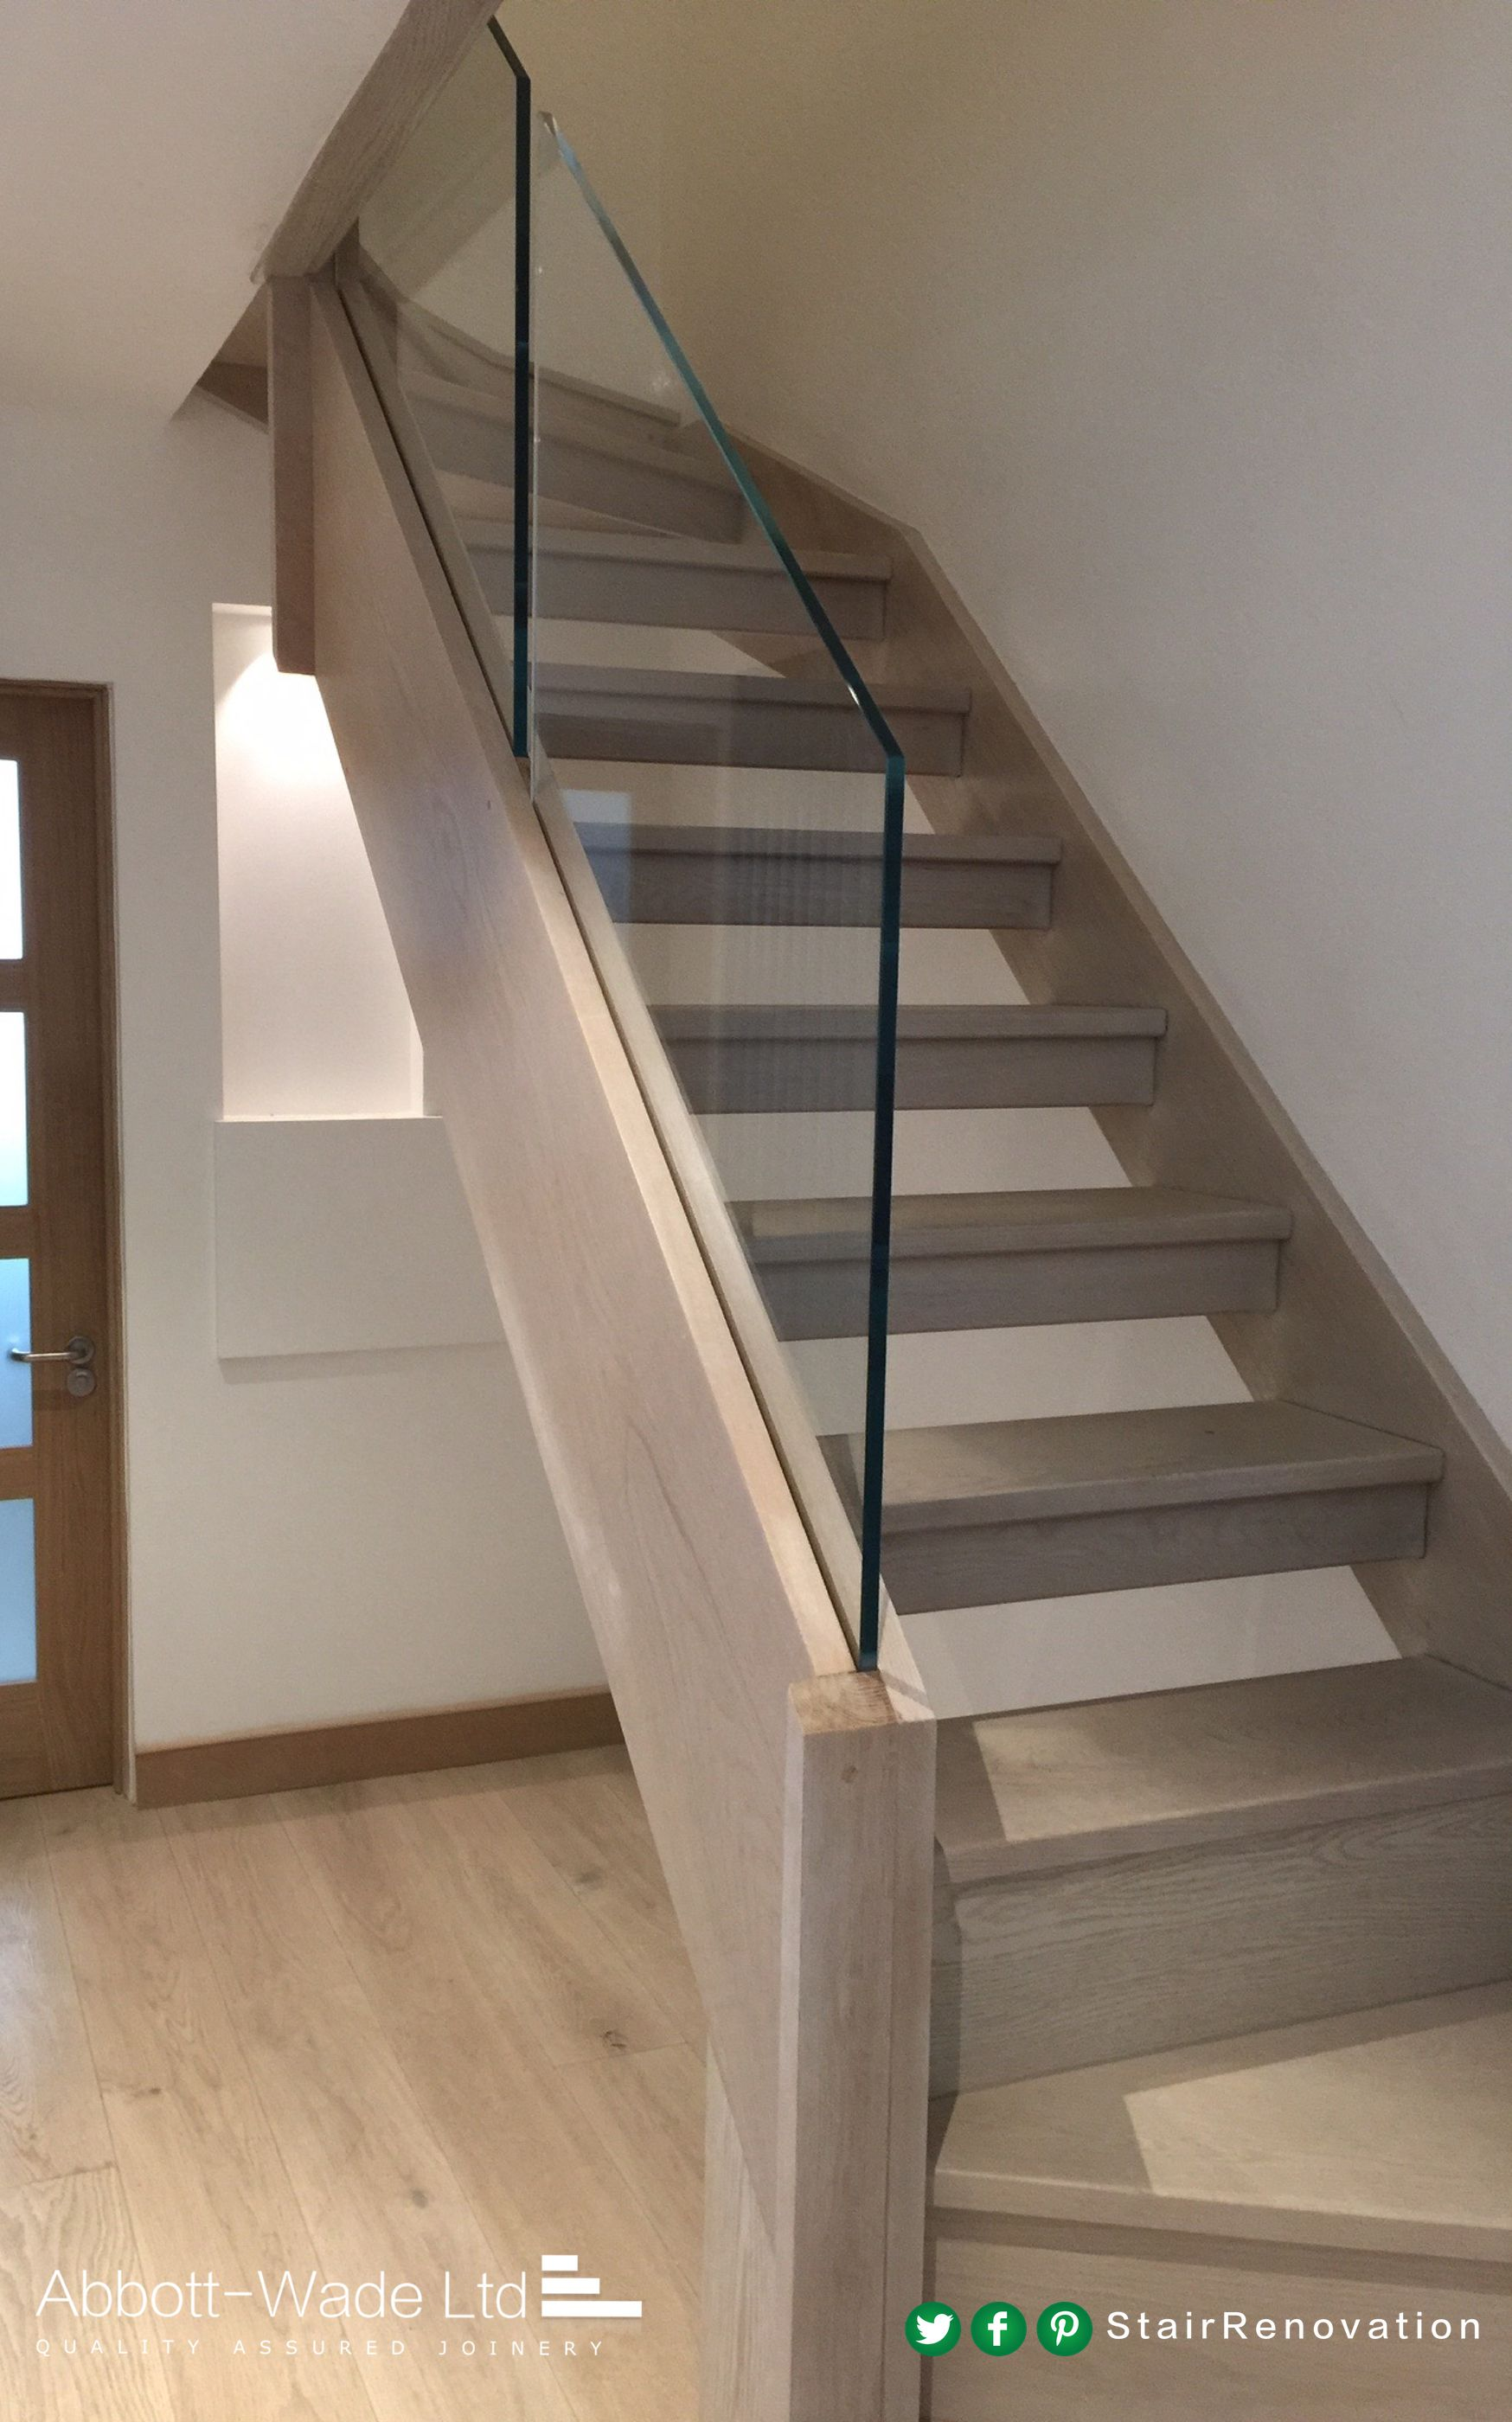 Abbott Wade Open Tread Stained Oak Staircase With | Glass Balusters For Stairs